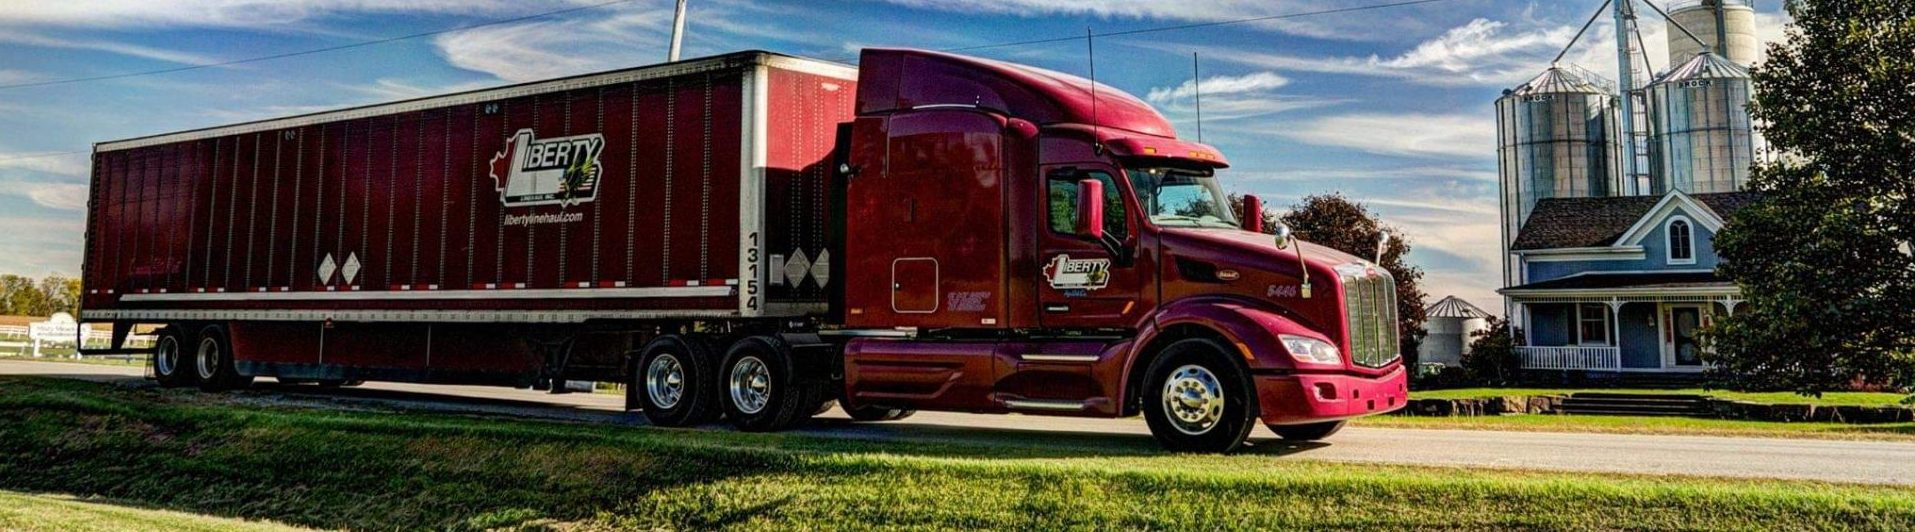 NOW HIRING AZ/CDL DRIVERS